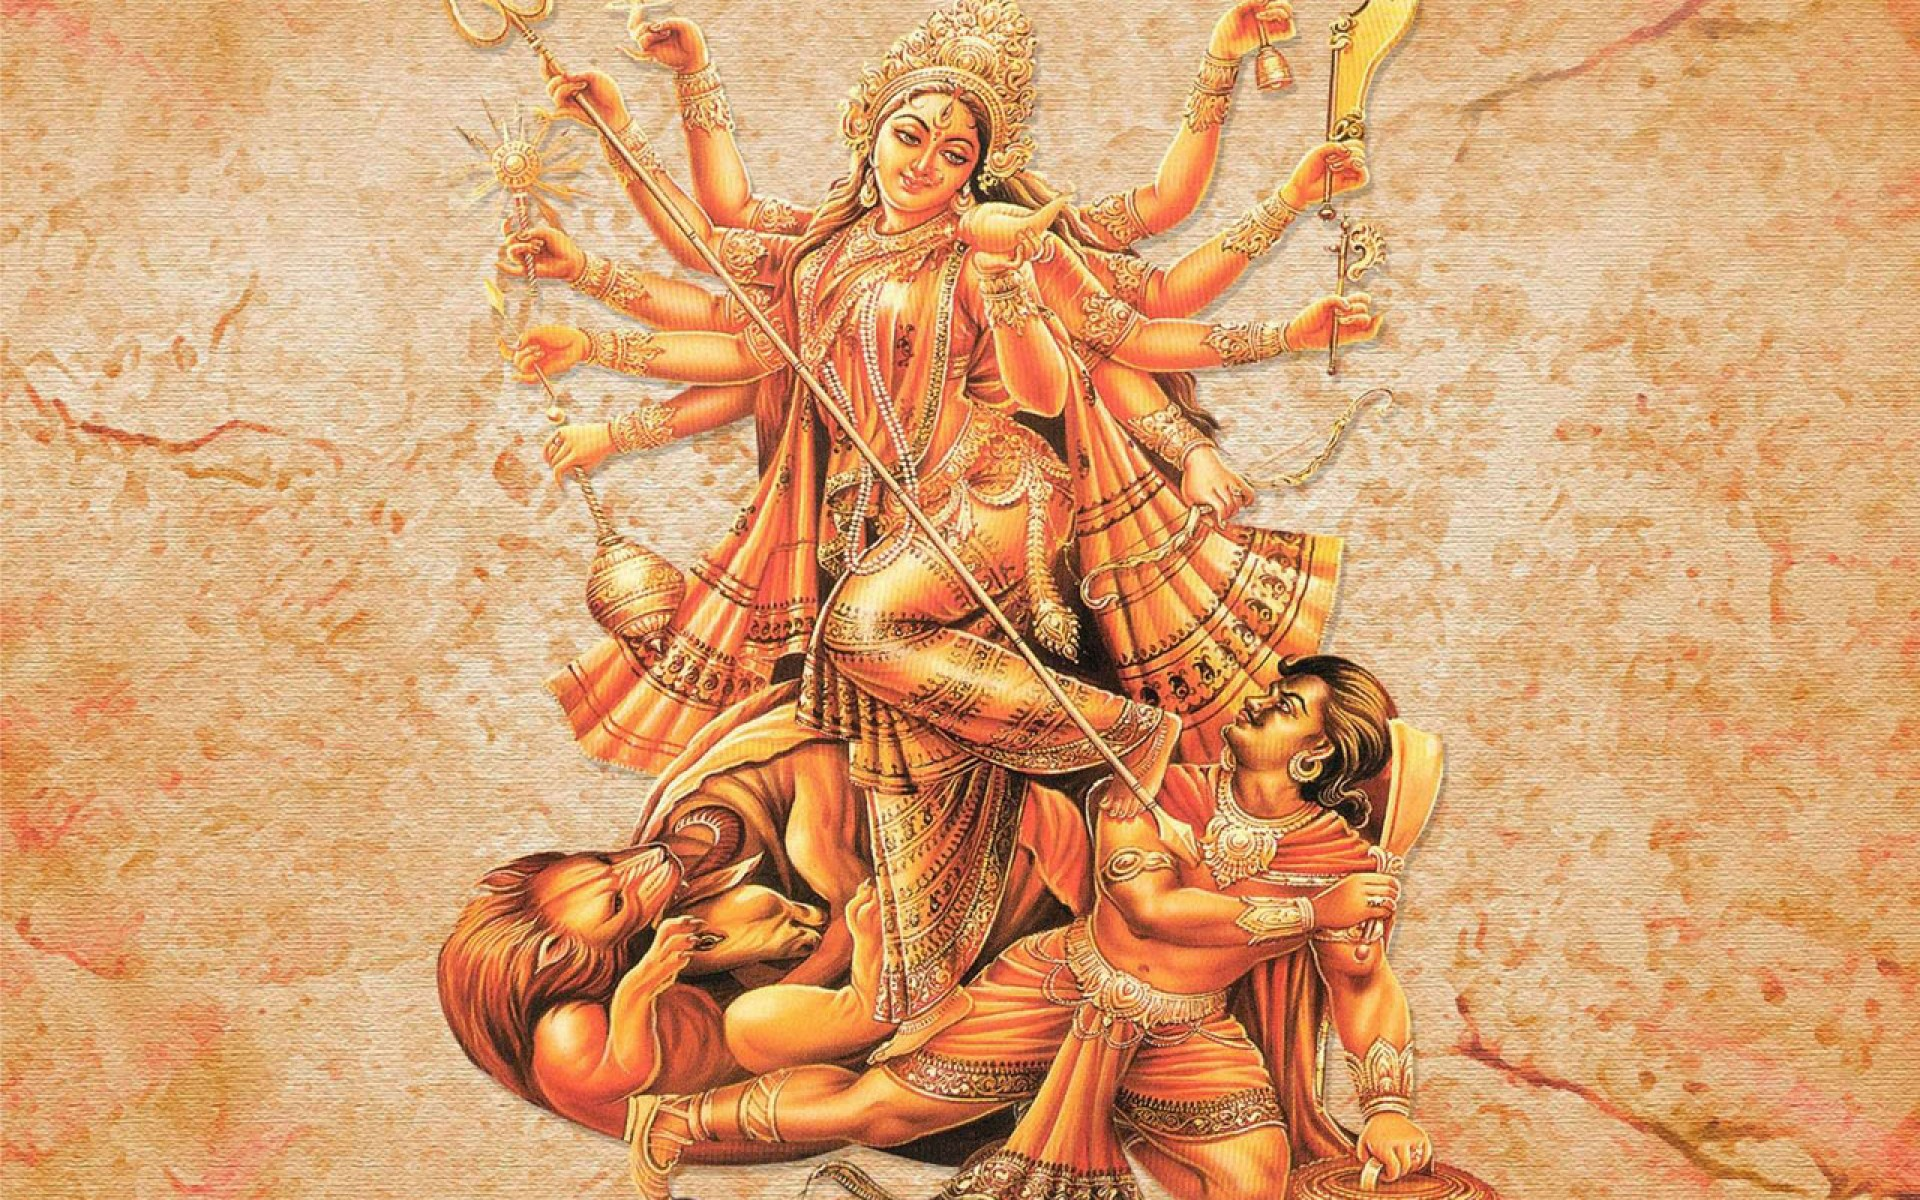 Durga Chalisa Aarti And Hd Wallpaper Amazoncouk Appstore For Android